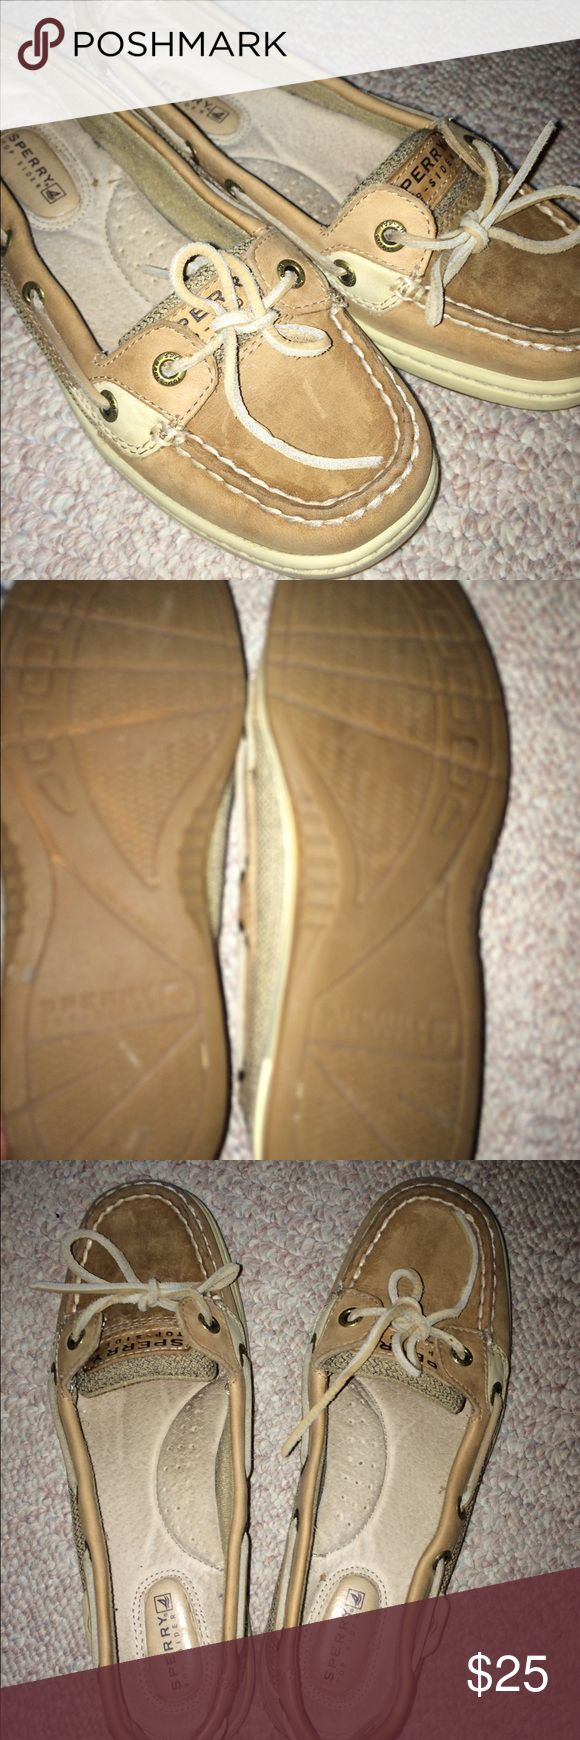 Women's Sperrys Women's Angelfish Linen/Oat Sperrys. Very trendy and classy. Good condition shoes with no rips or tears. Size 6 1/2 USA. Sperry Top-Sider Shoes Athletic Shoes